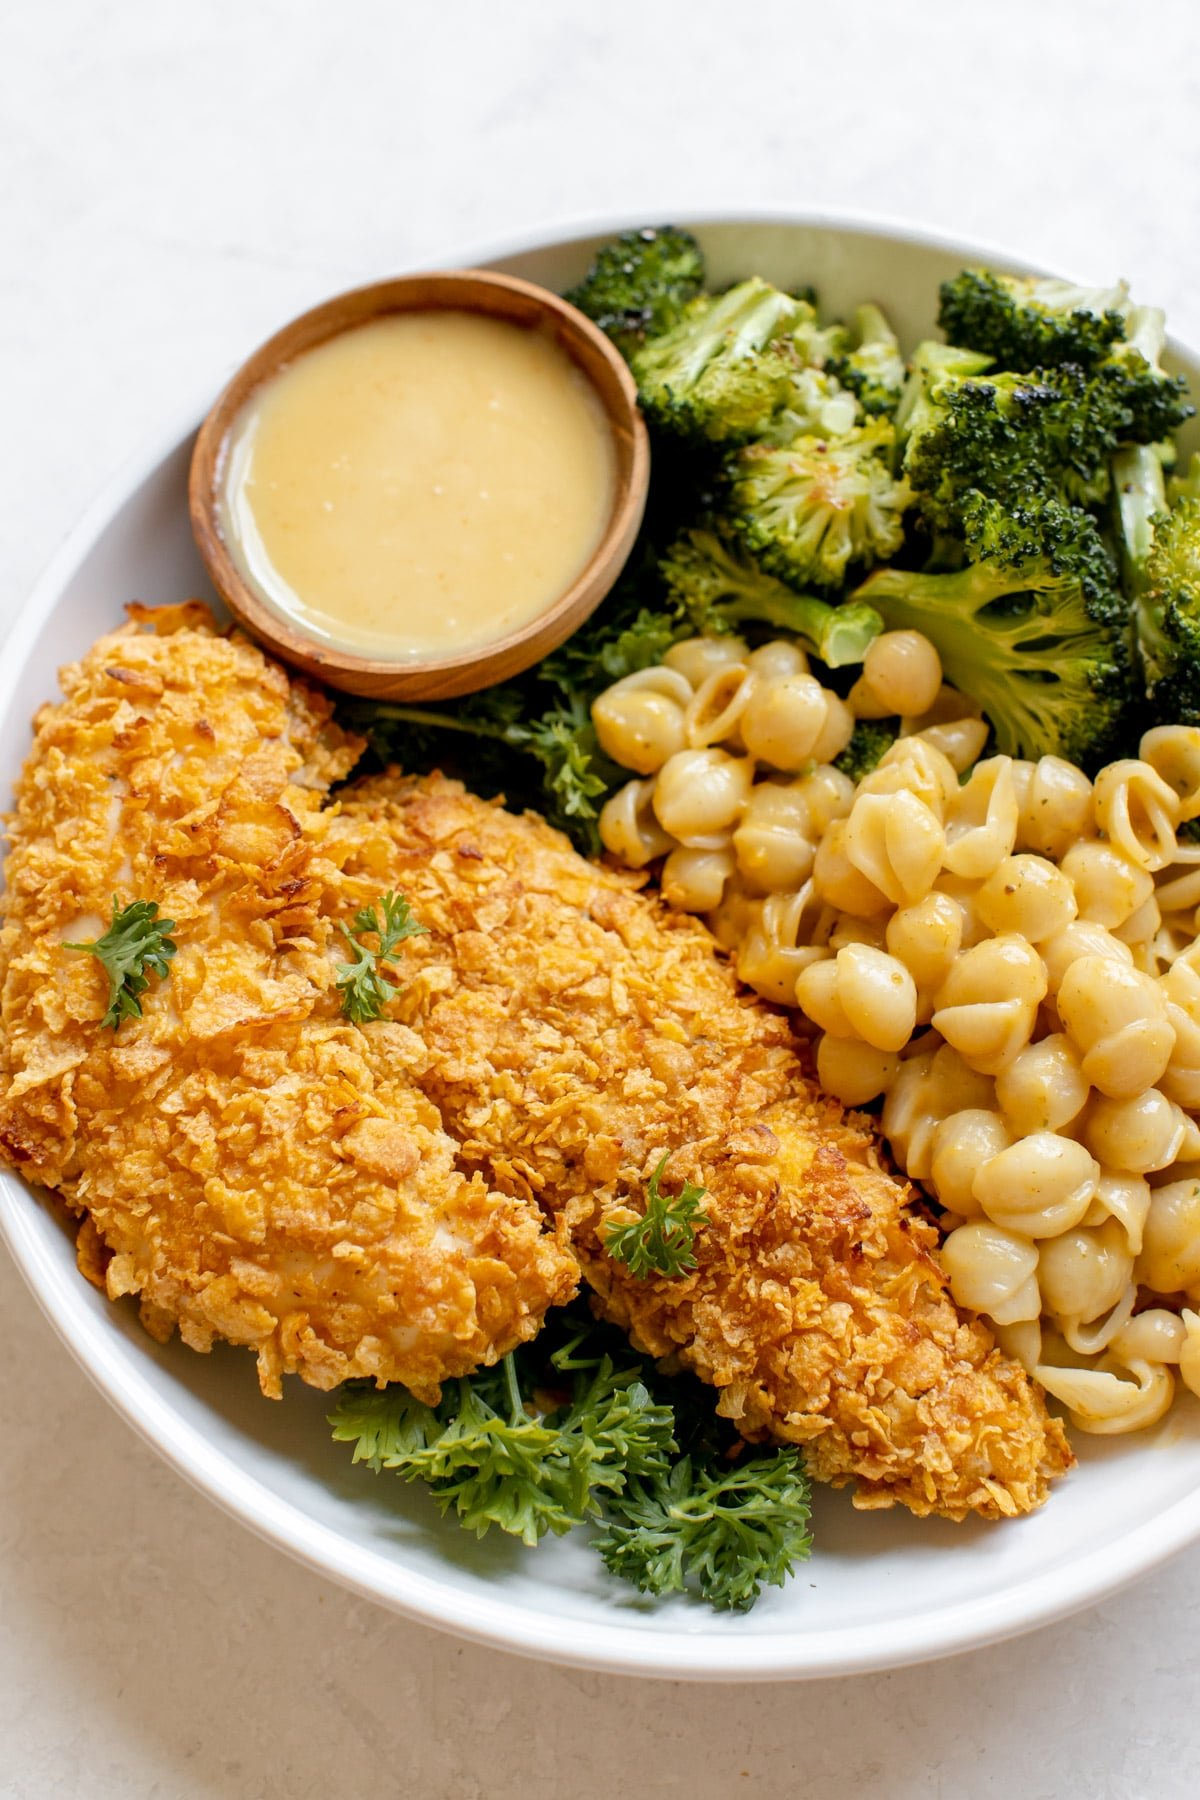 chicken tenders, mac and cheese and broccoli in a white plate